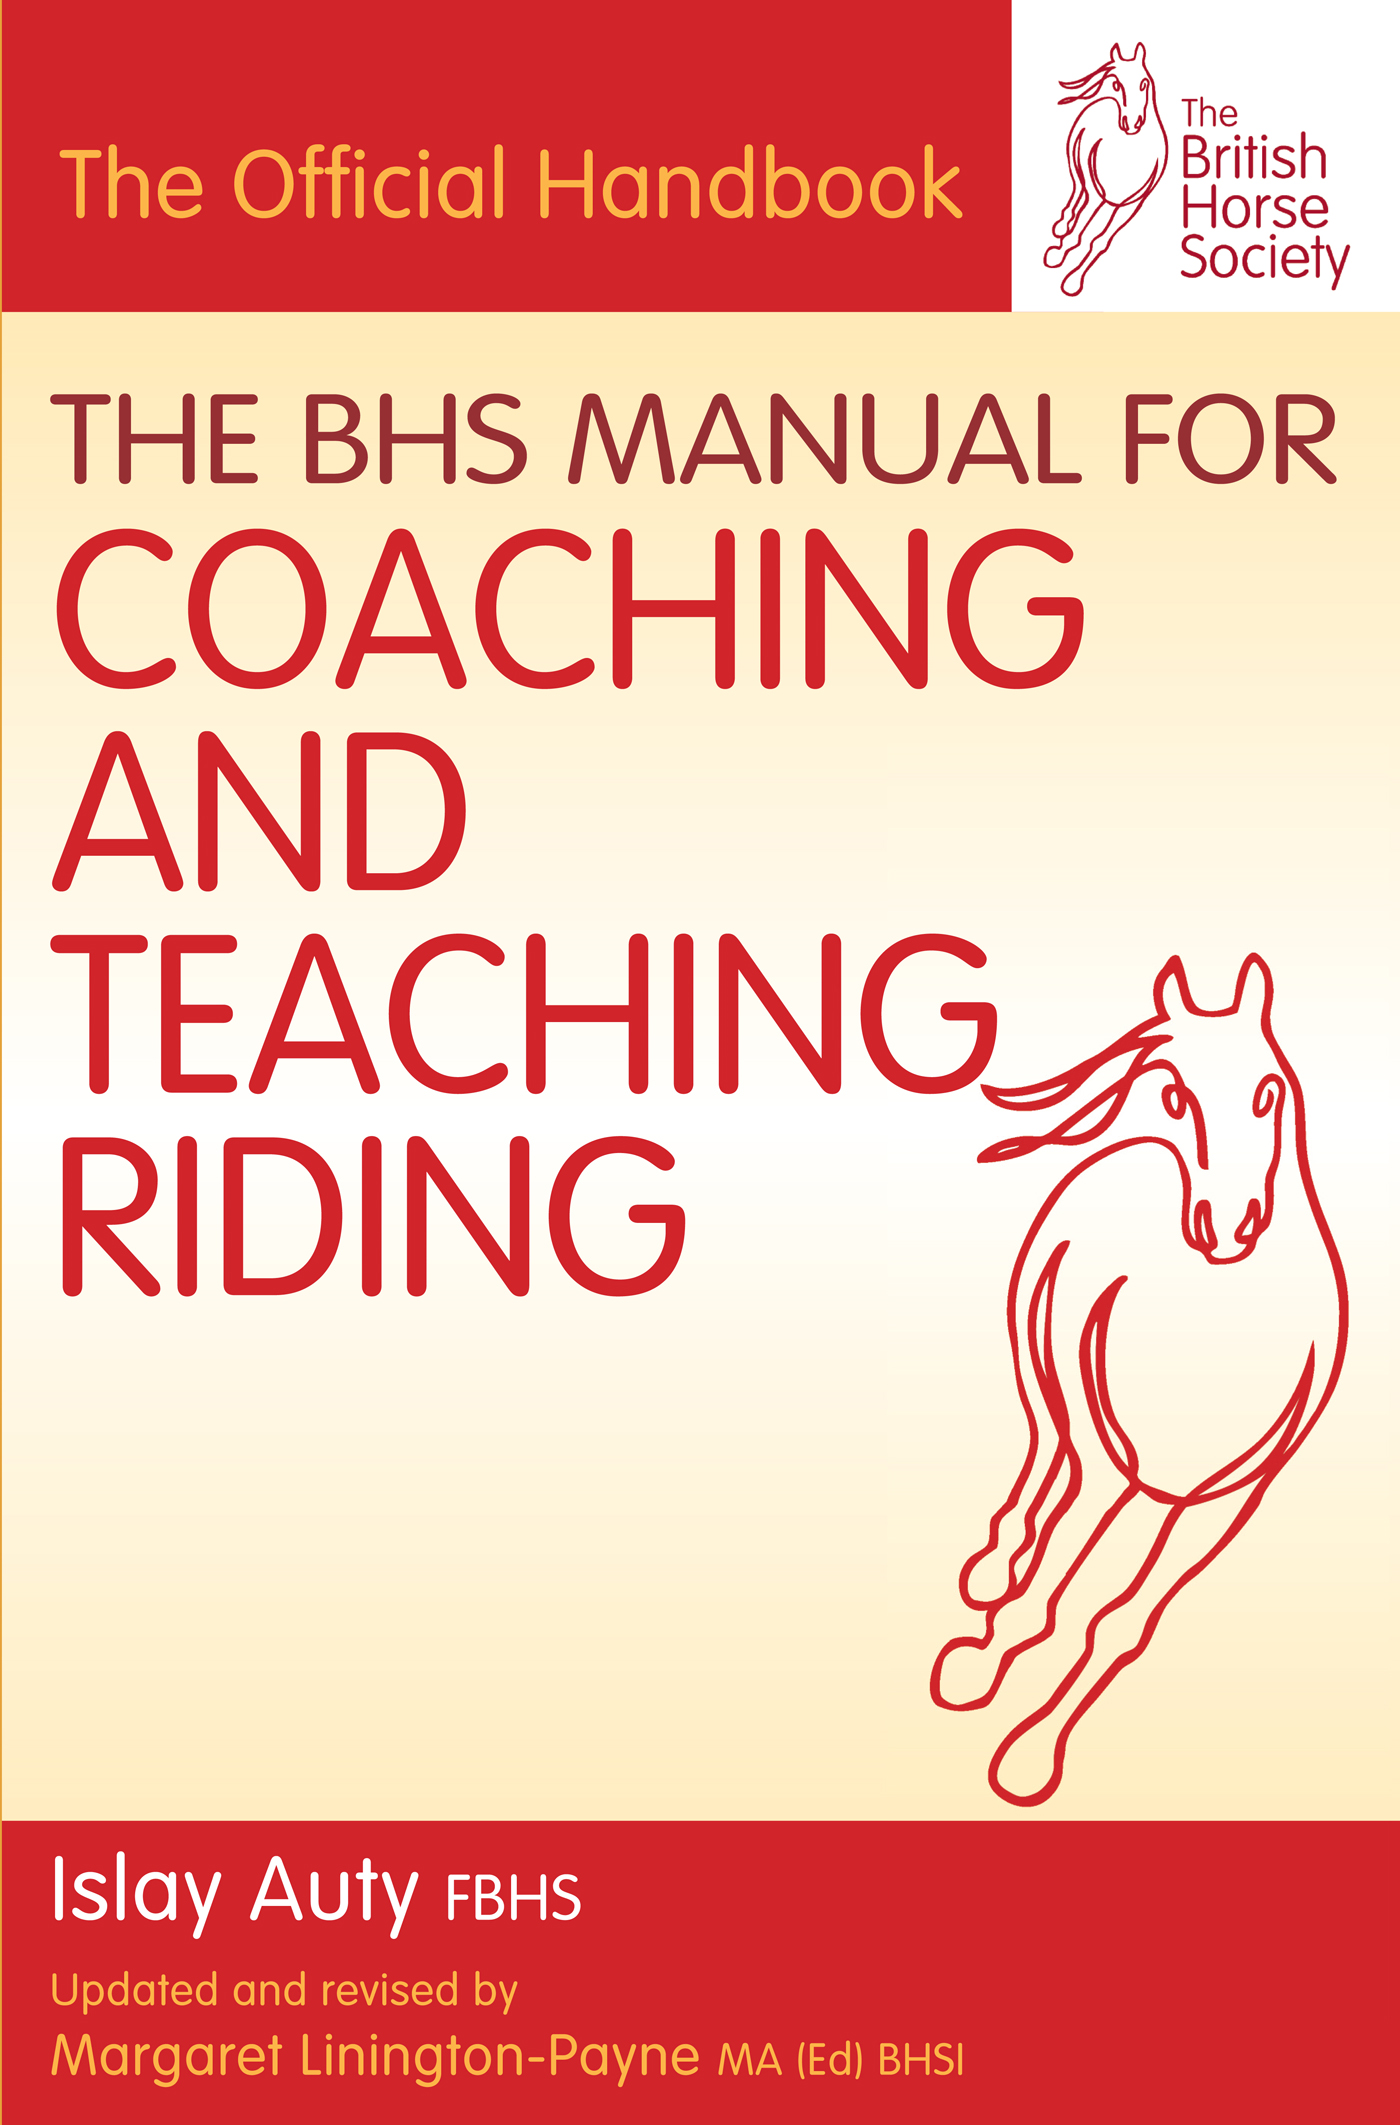 BHS Manual for Coaching and Teaching Riding By: Islay Auty